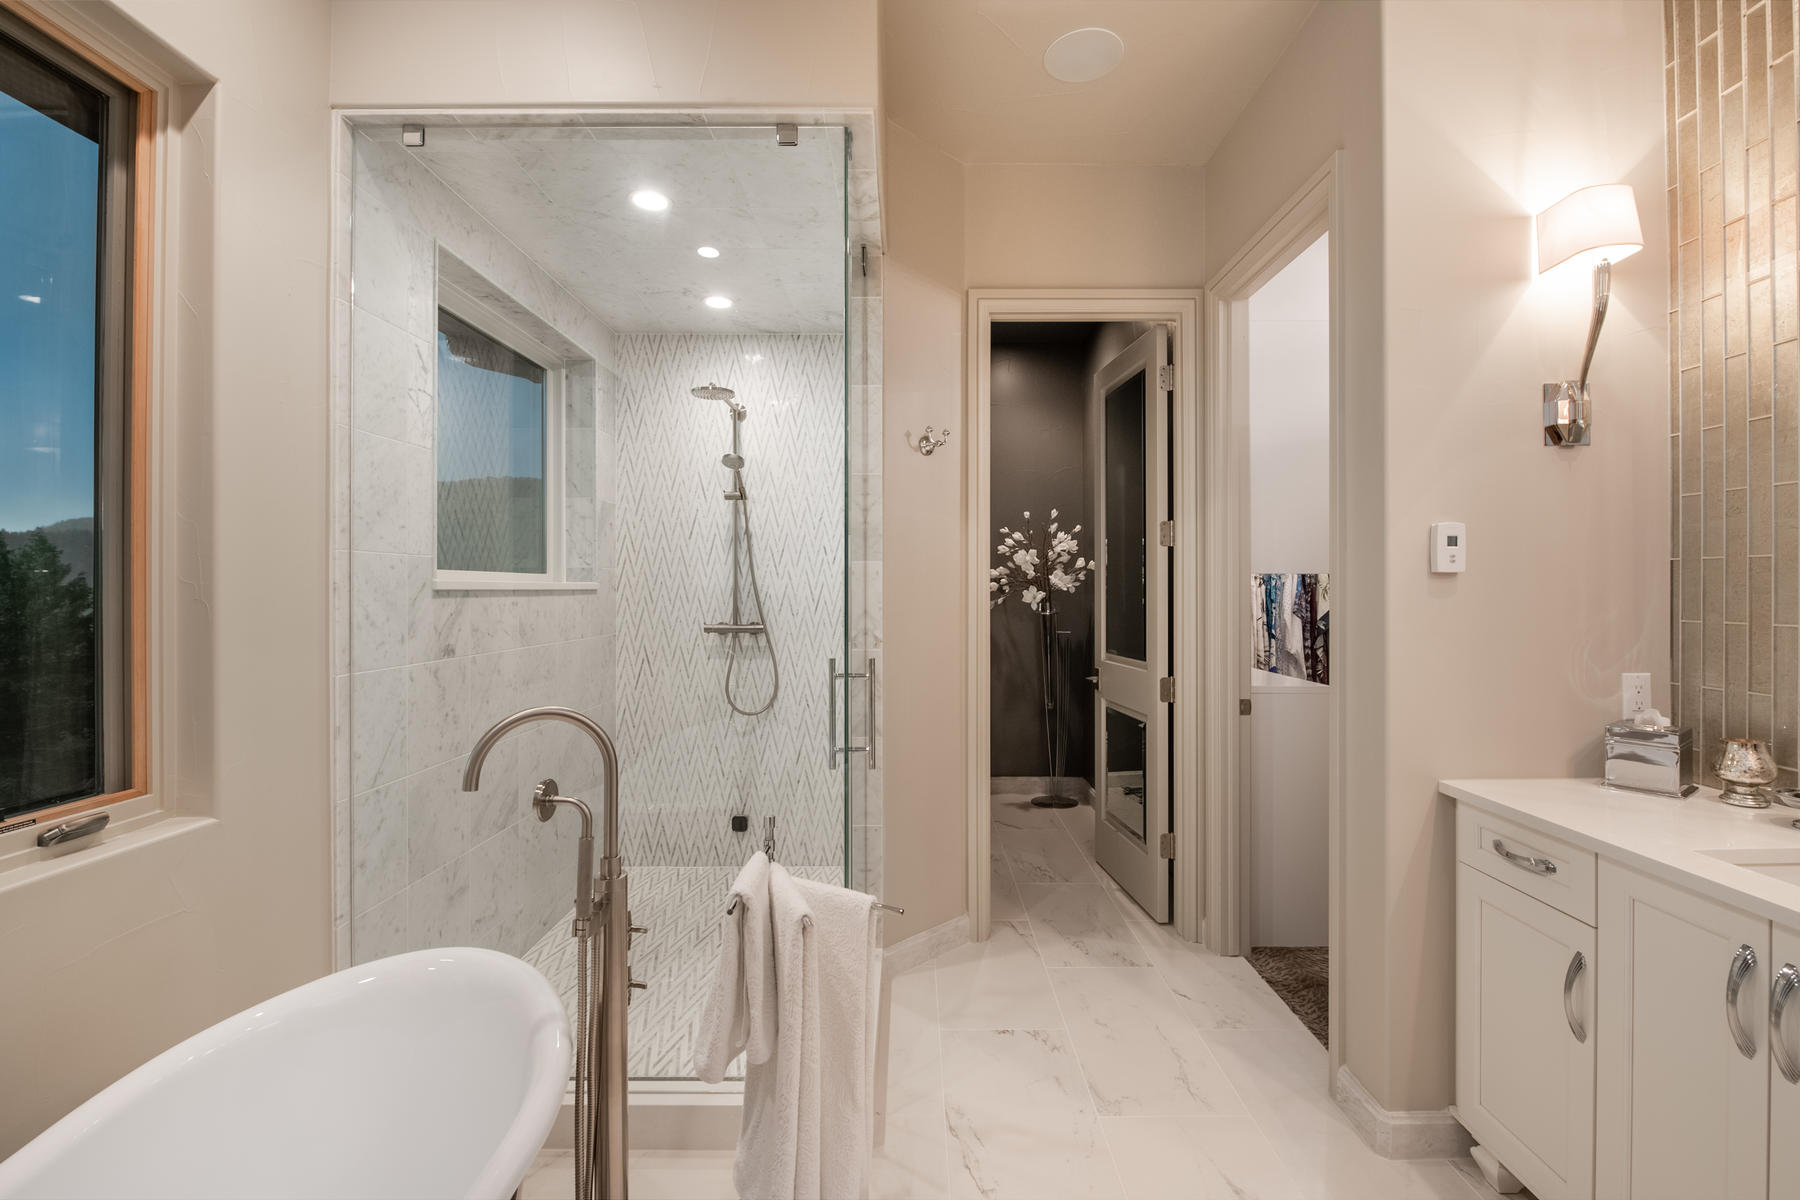 Additional photo for property listing at Classic Sophistication with Mountain Modern Luxury 6009 Flat Creek Drive Evergreen, Colorado 80439 United States